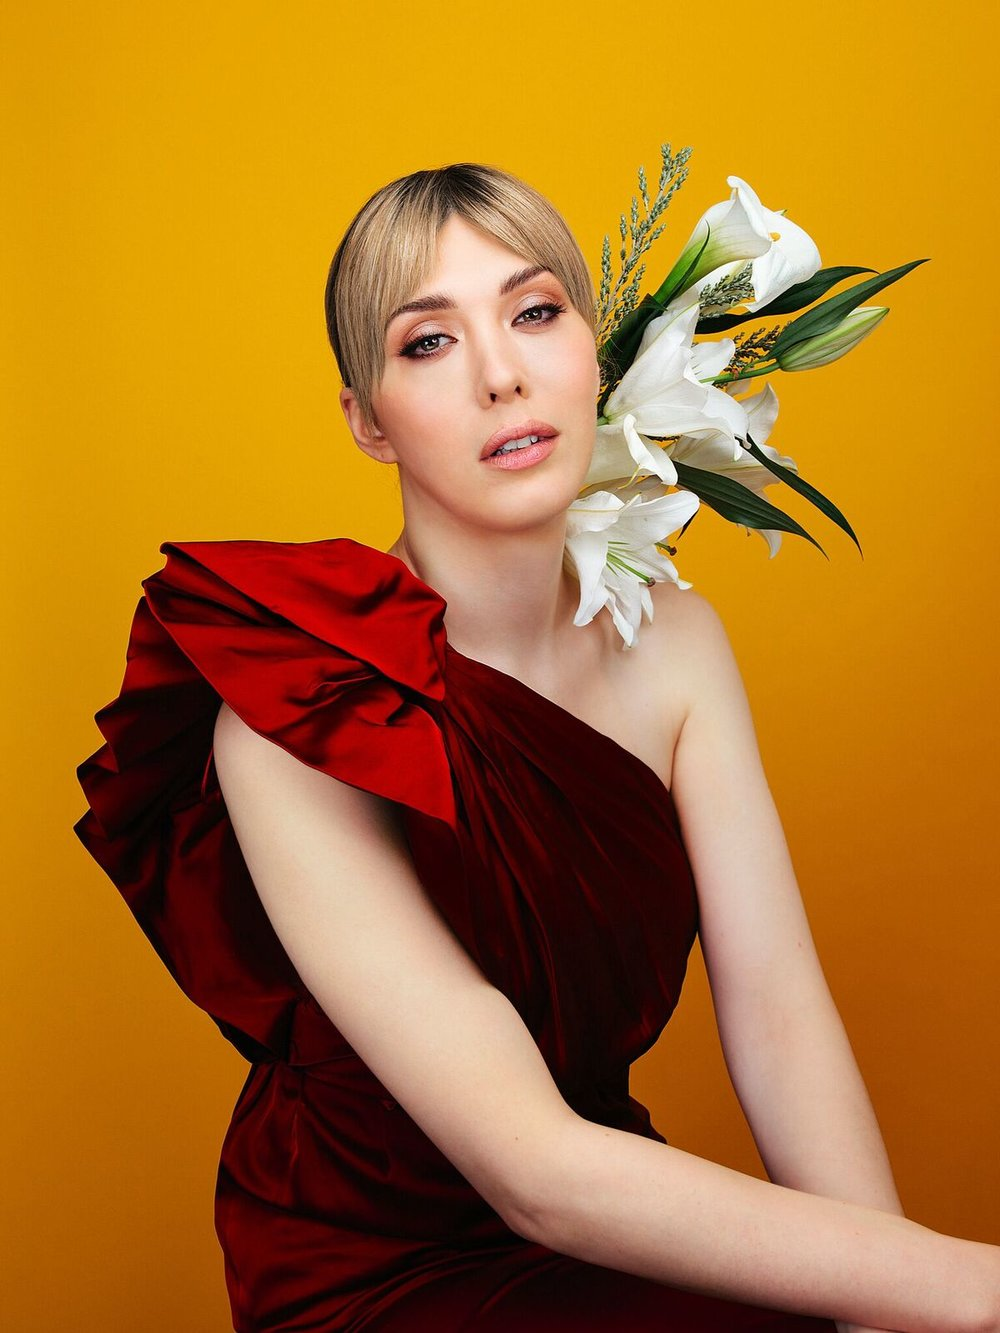 - PARIS LEES -A FORCE TO BE RECKONED WITH